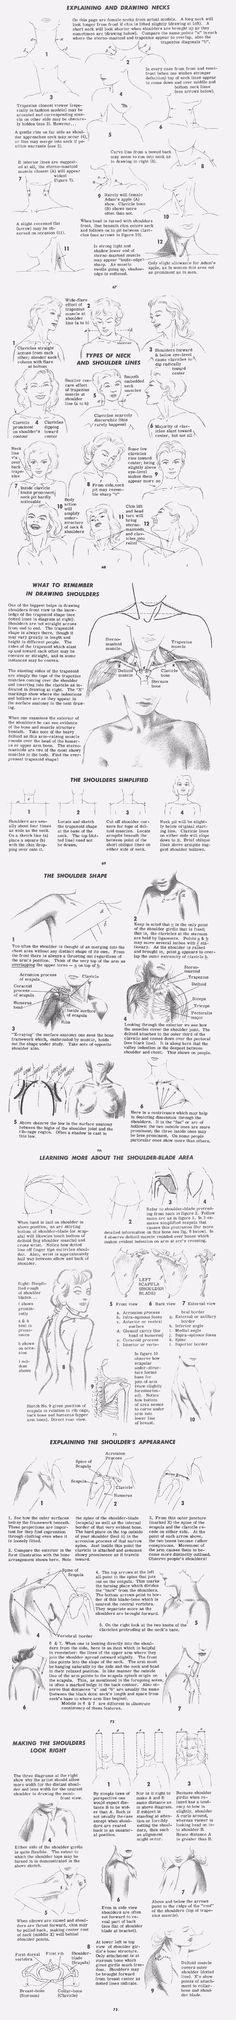 Drawing Shoulders And neck | http://www.ljplus.ru/img4/p/i/pinwizz/neck_shoulders_drawing.gif